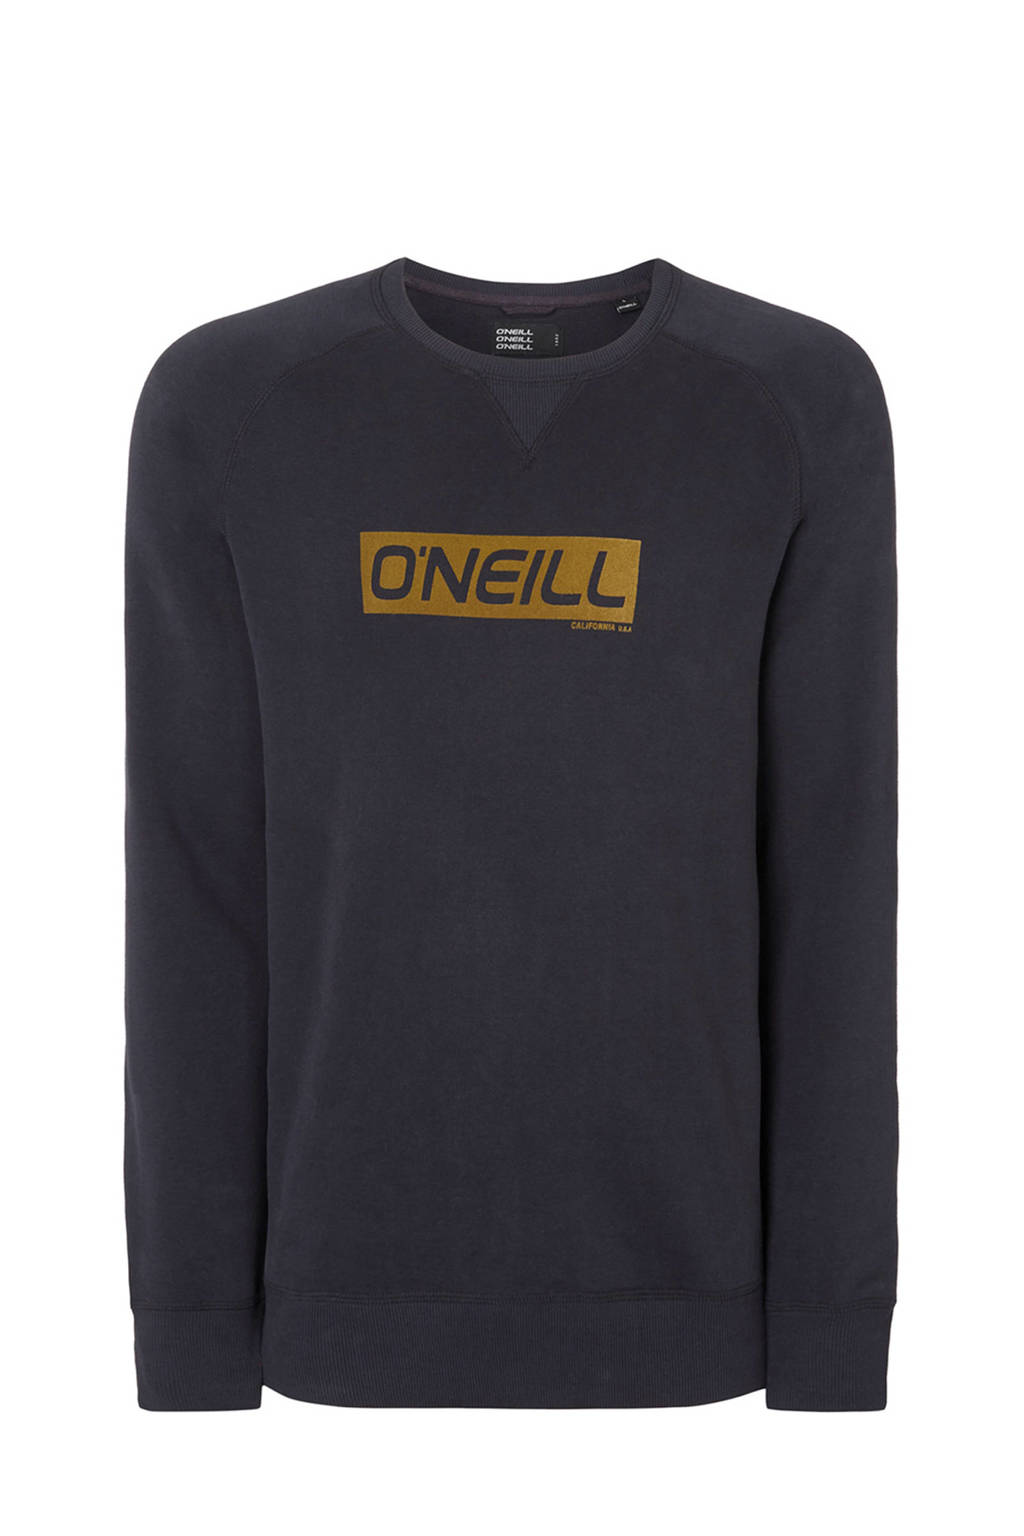 O'Neill sweater met logo royal blue melange, Royal Blue Melange